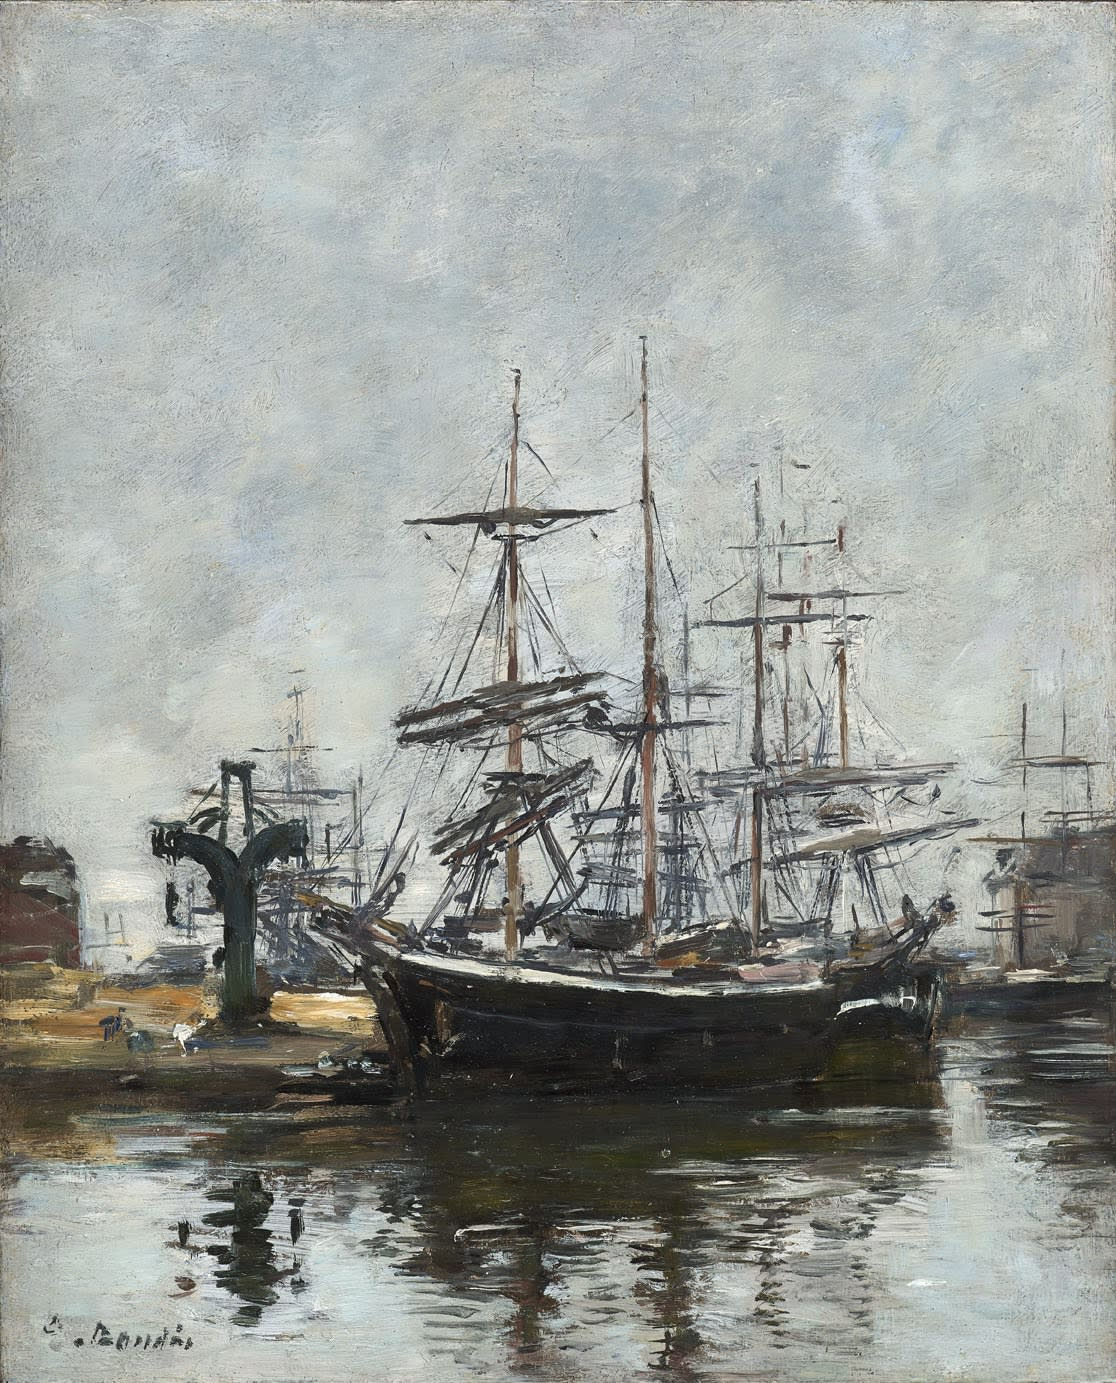 "<span class=""link fancybox-details-link""><a href=""/artists/29-eugene-boudin/works/9376-eug-ne-boudin-le-havre-voiliers-quai-bassin-de-la-c.-1885-1890/"">View Detail Page</a></span><div class=""artist""><span class=""artist""><strong>Eugène Boudin</strong></span></div>